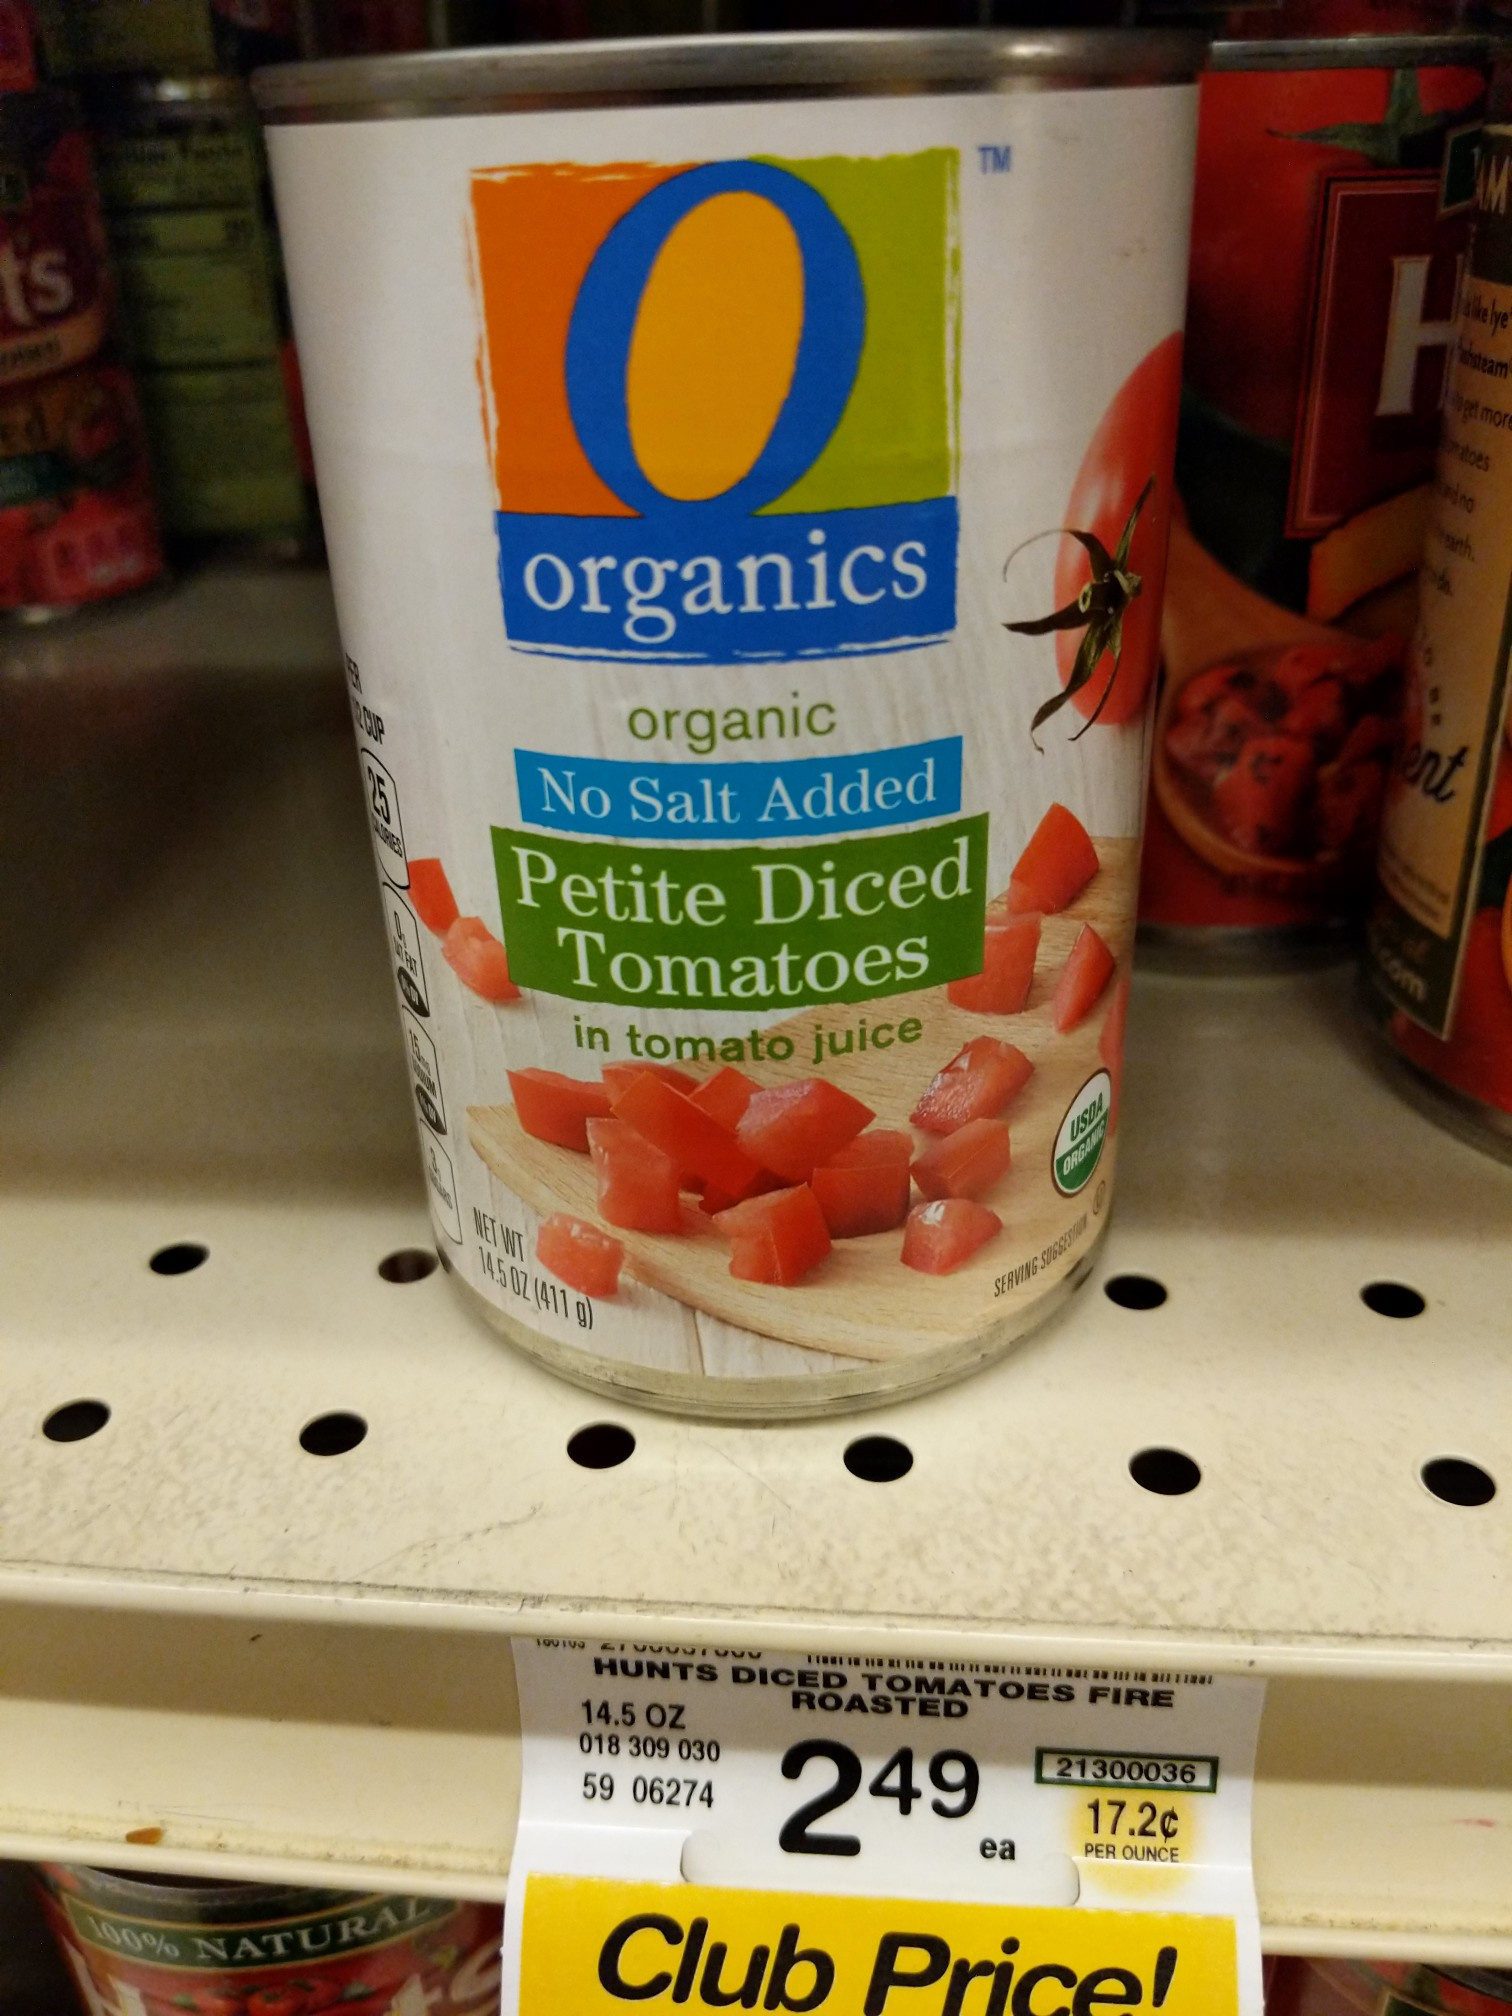 No Salt Added Petite Diced Tomatoes in tomato juice - Product - en